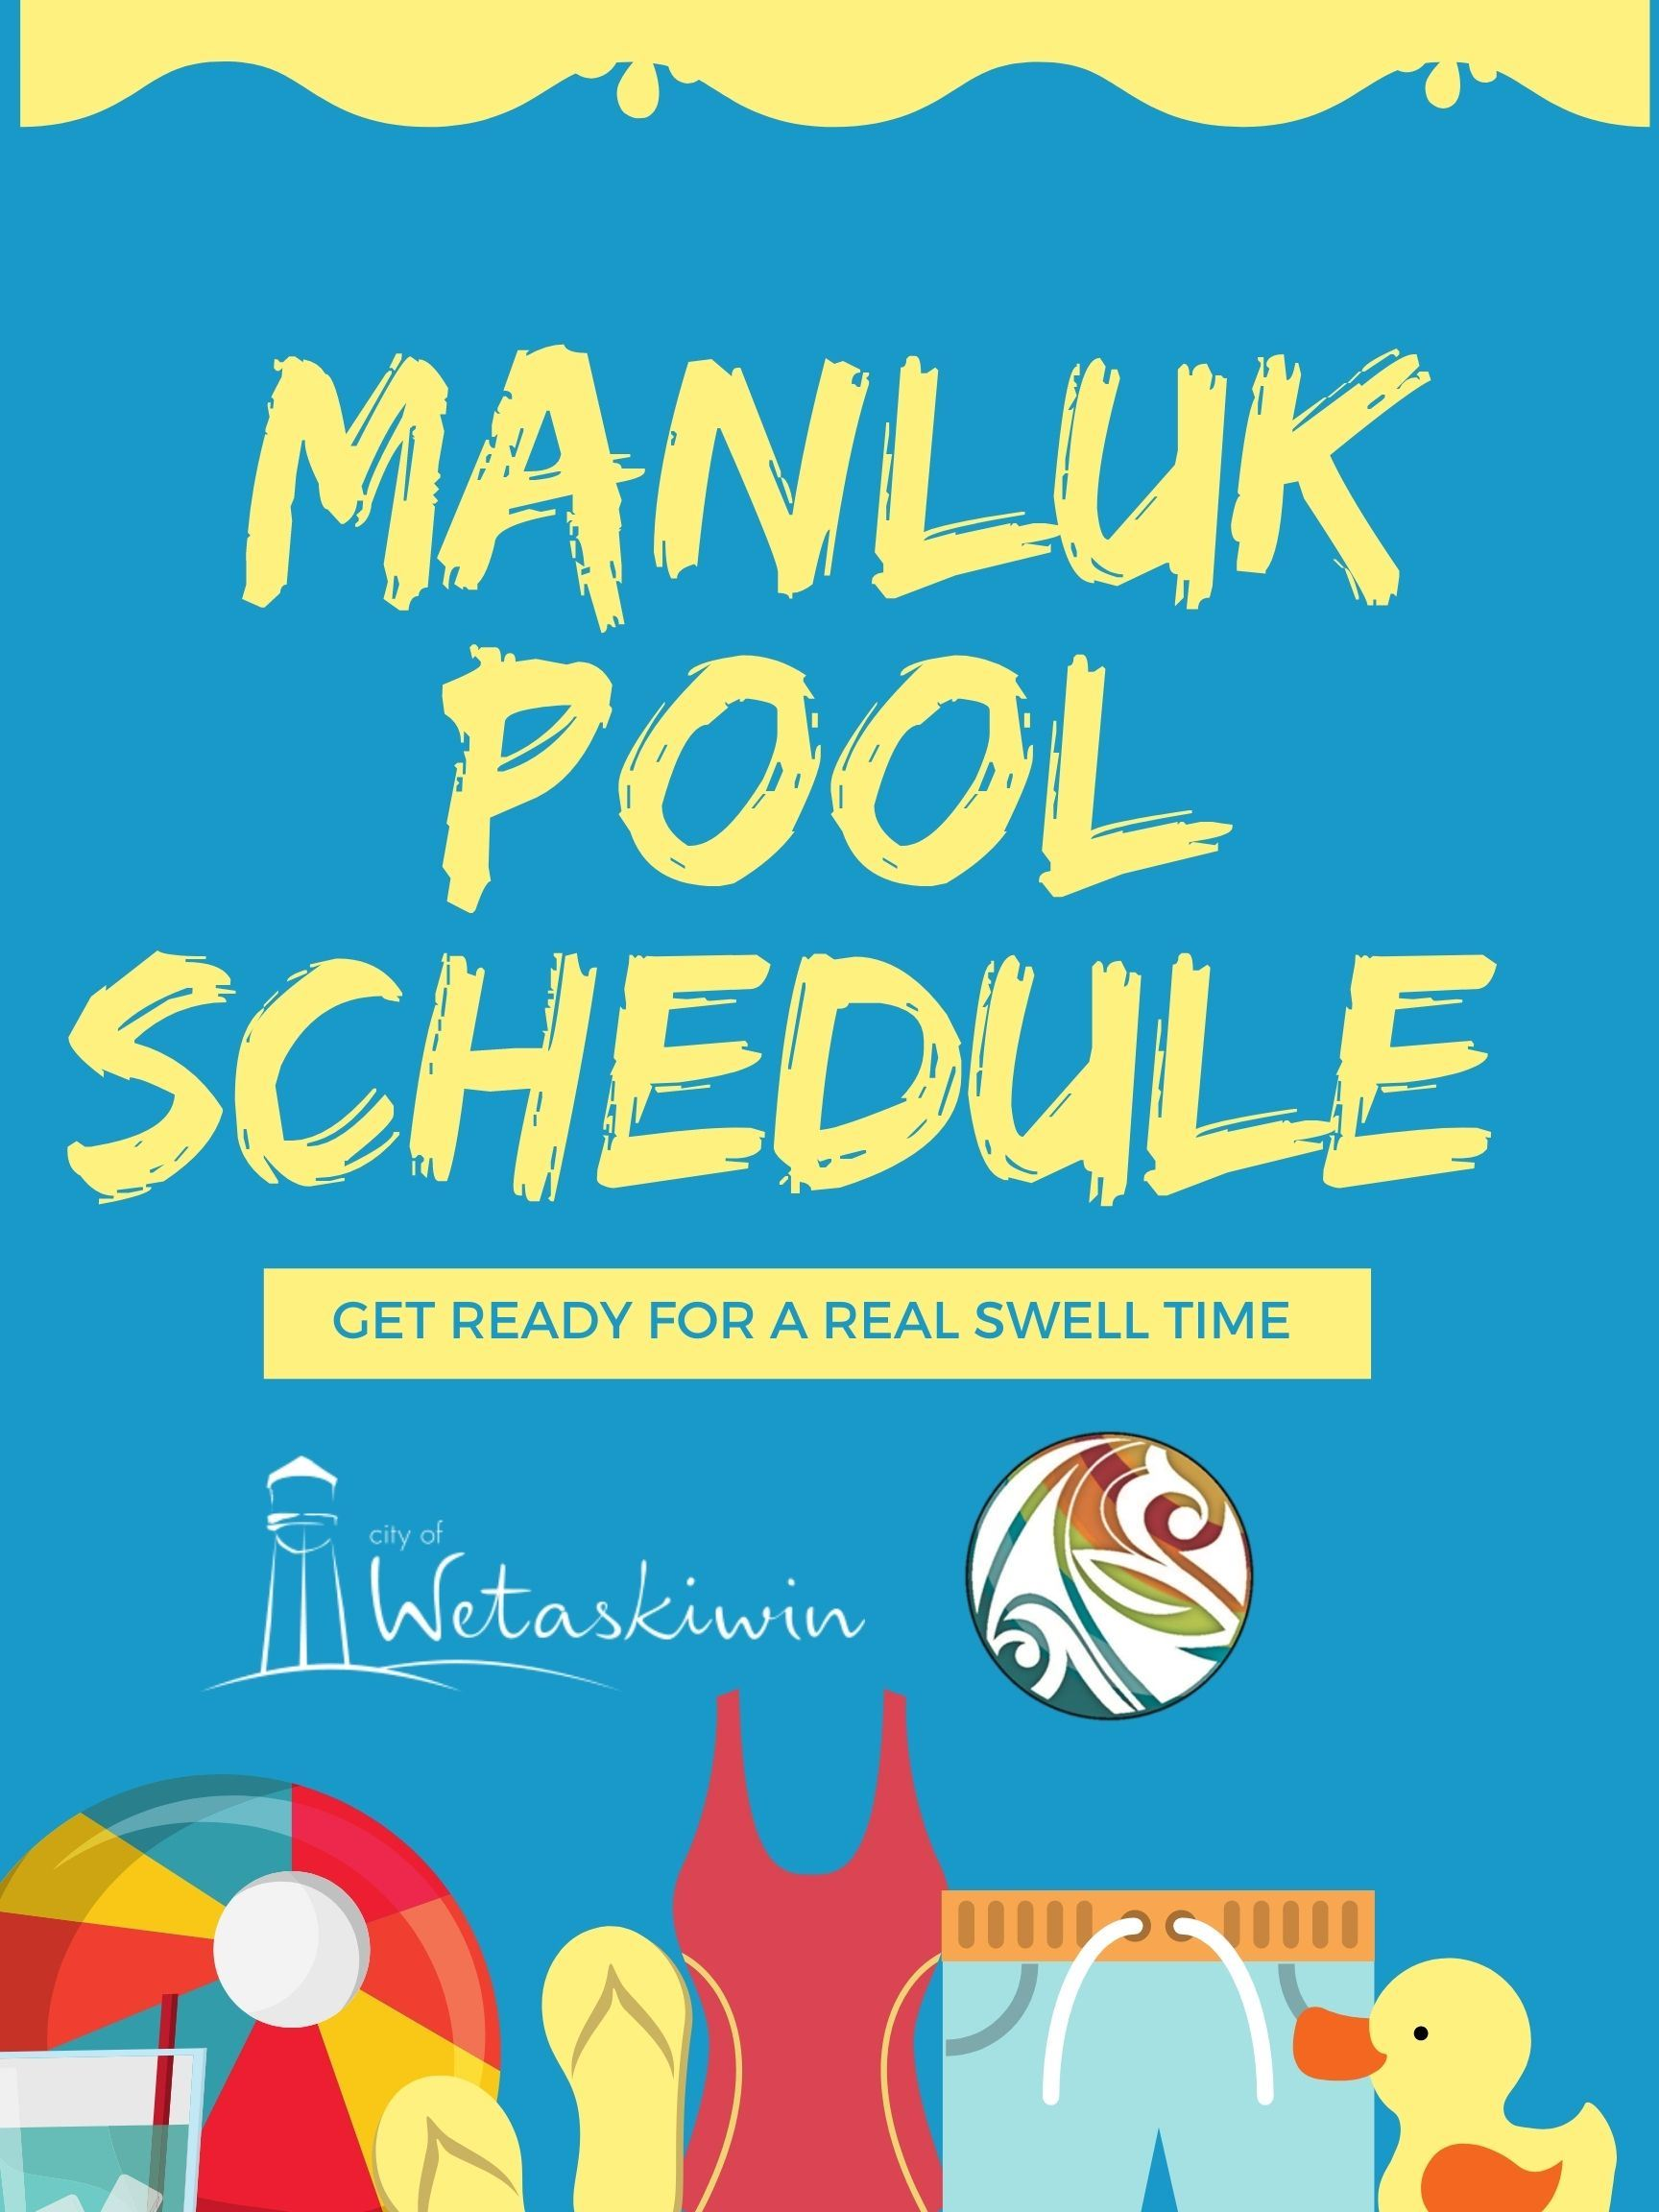 Manluk Pool Schedule Newsflash image